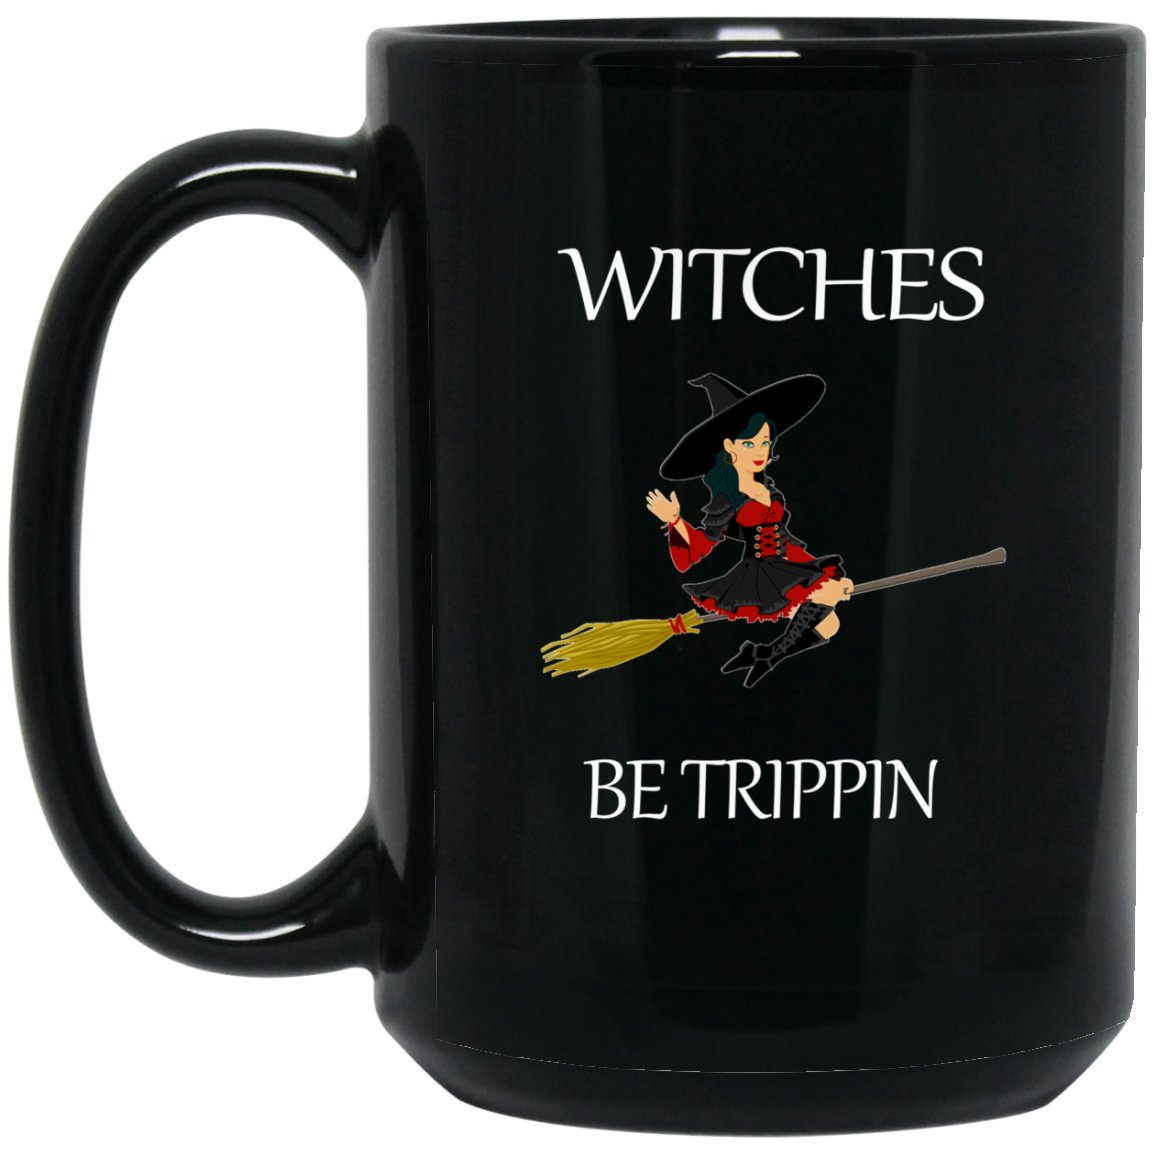 Witch fashion - Witches Be Trippin Mug Large Black Mug